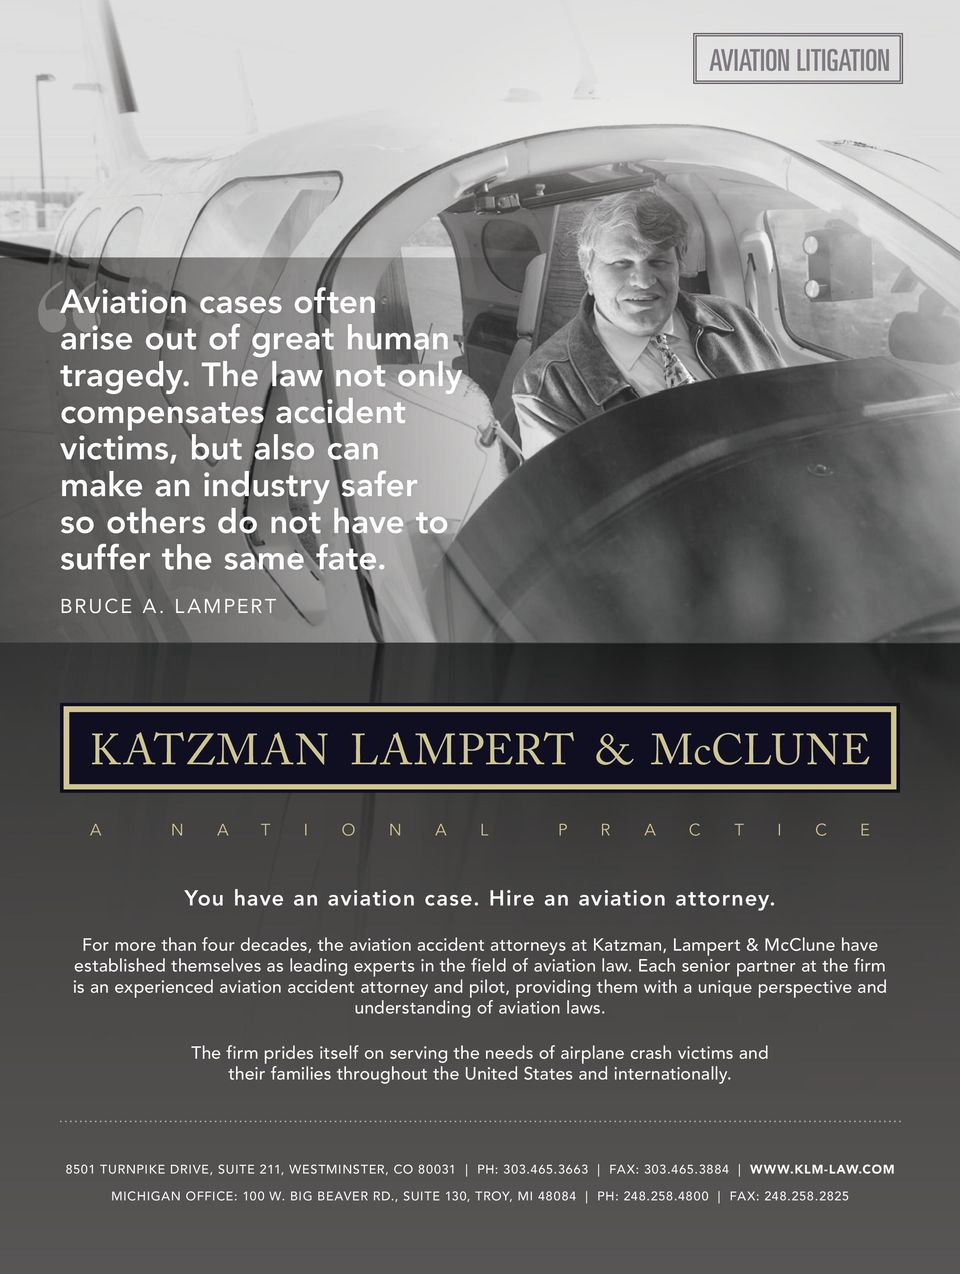 L AMPERT KATZMAN LAMPERT & McCLUNE A N A T I O N A L P R A C T I C E You have an aviation case. Hire an aviation attorney.